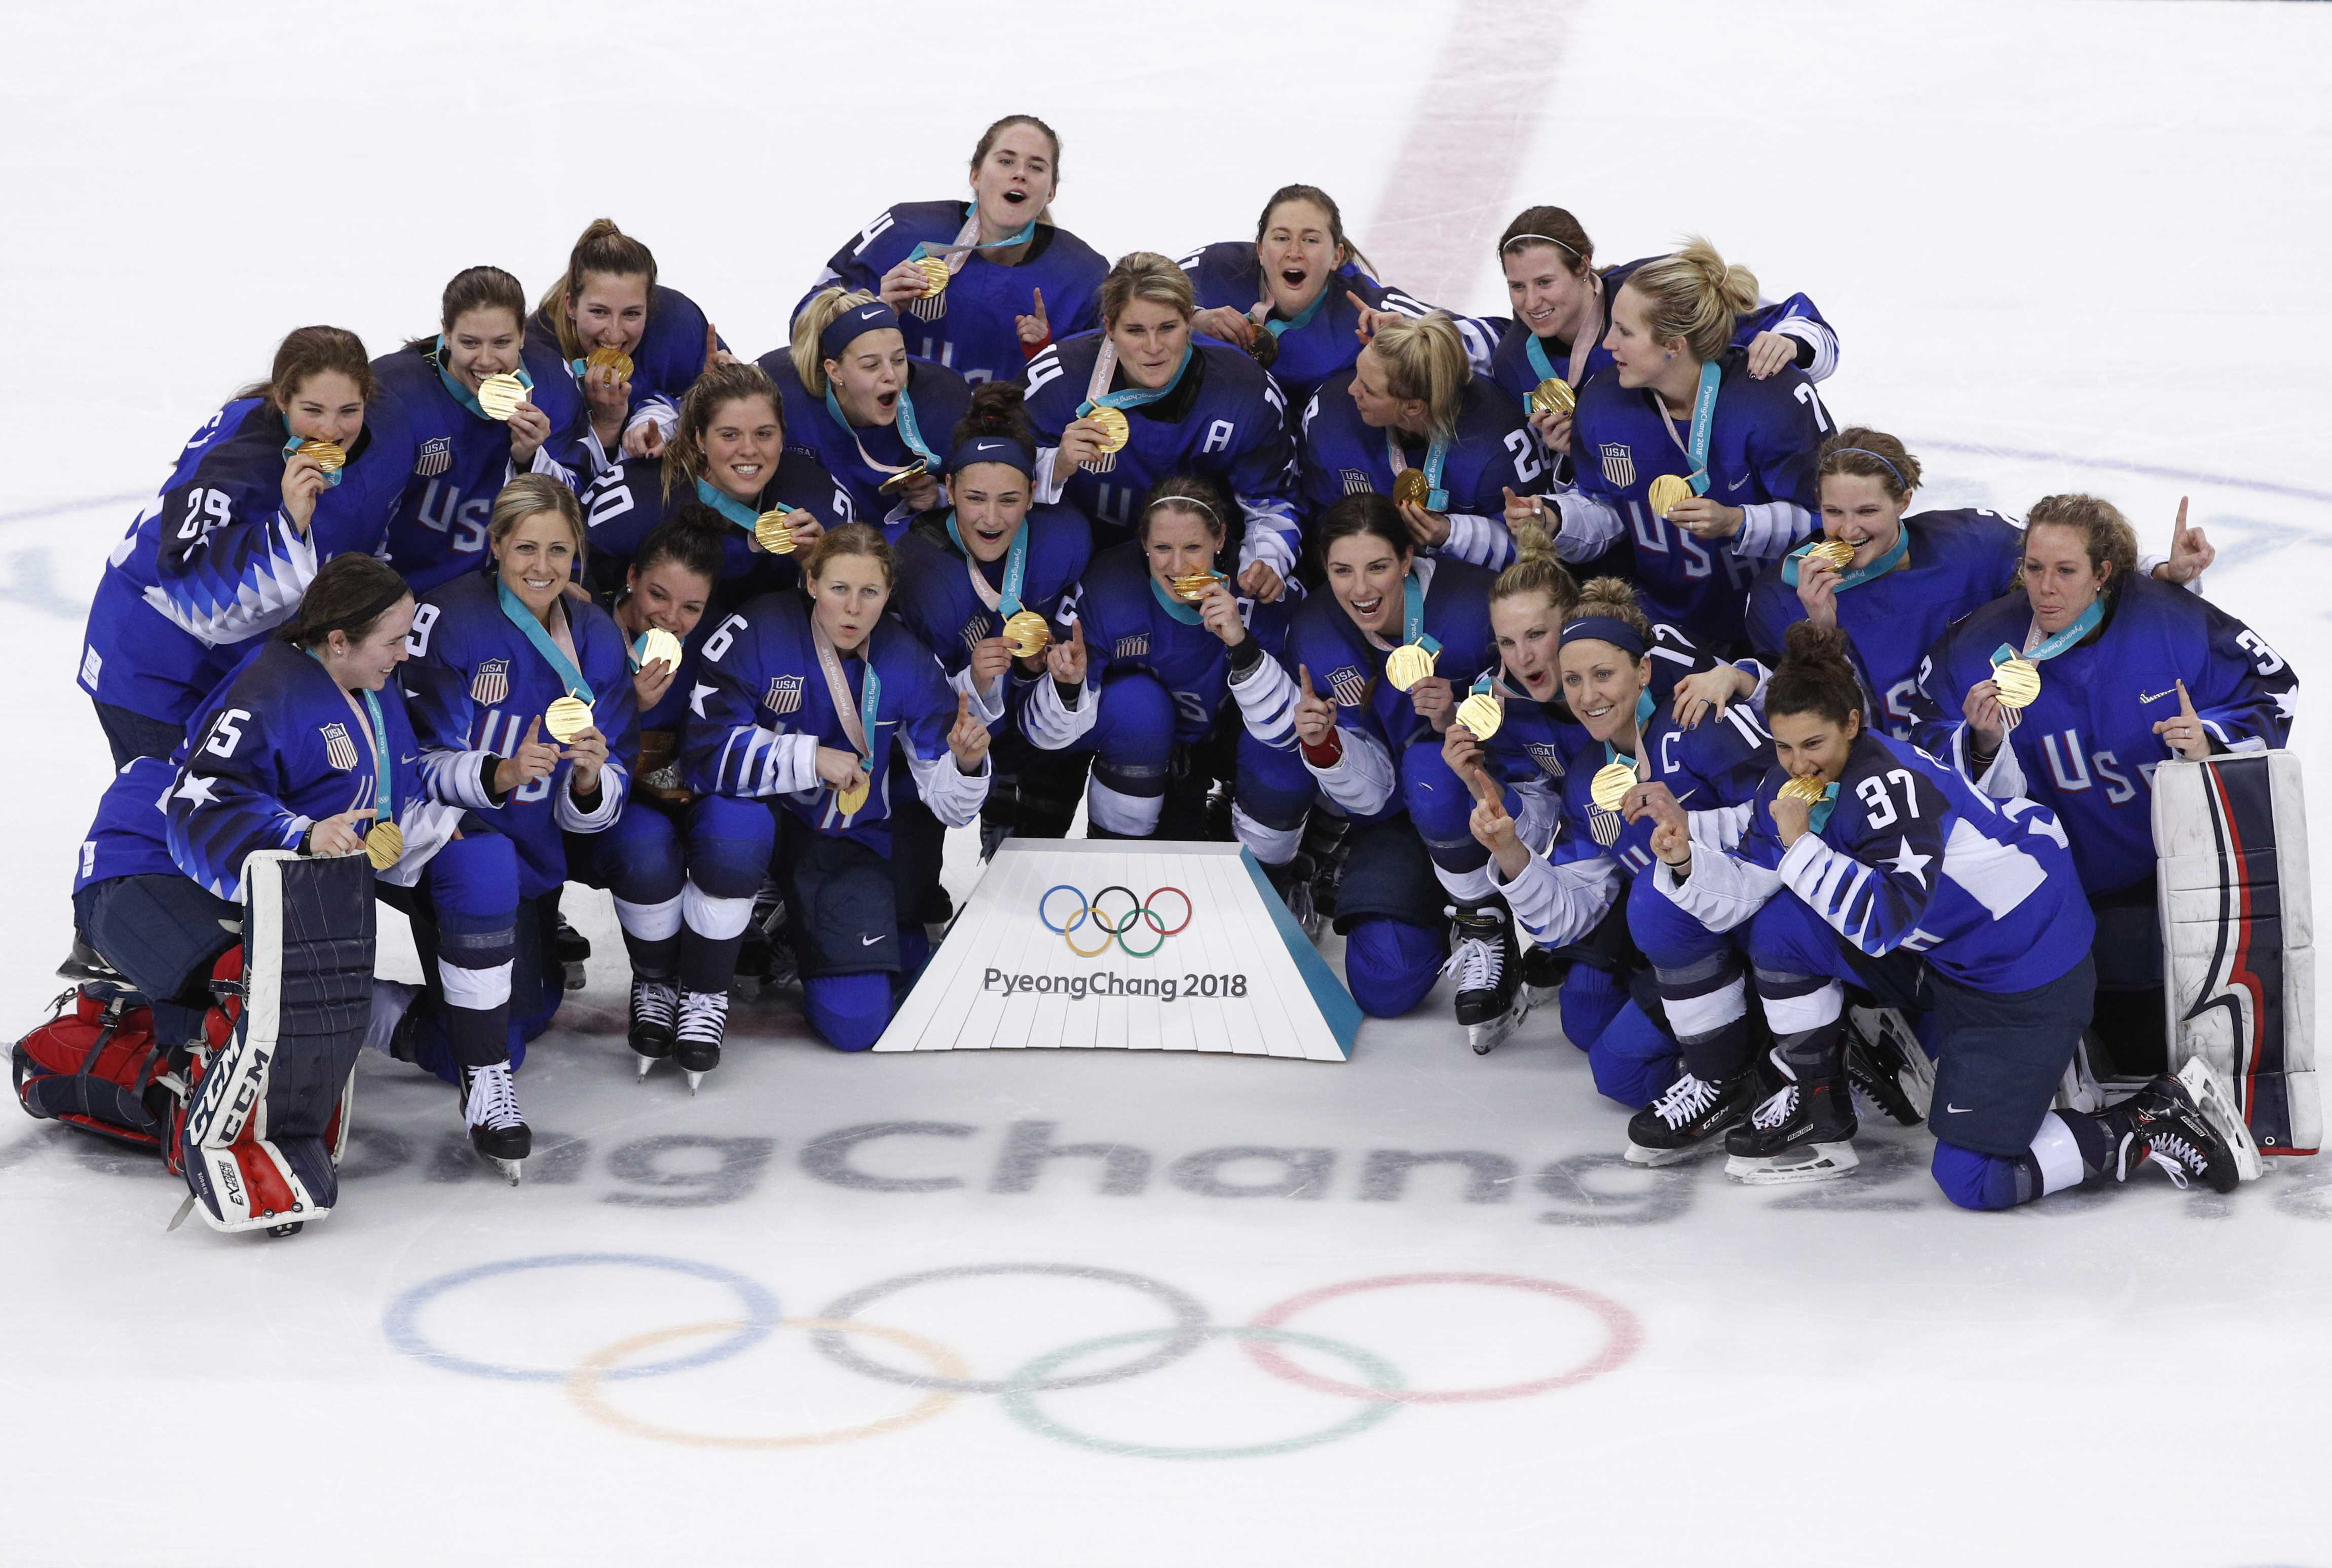 U.S. Women's Hockey Upsets Canada to Win Gold Medal